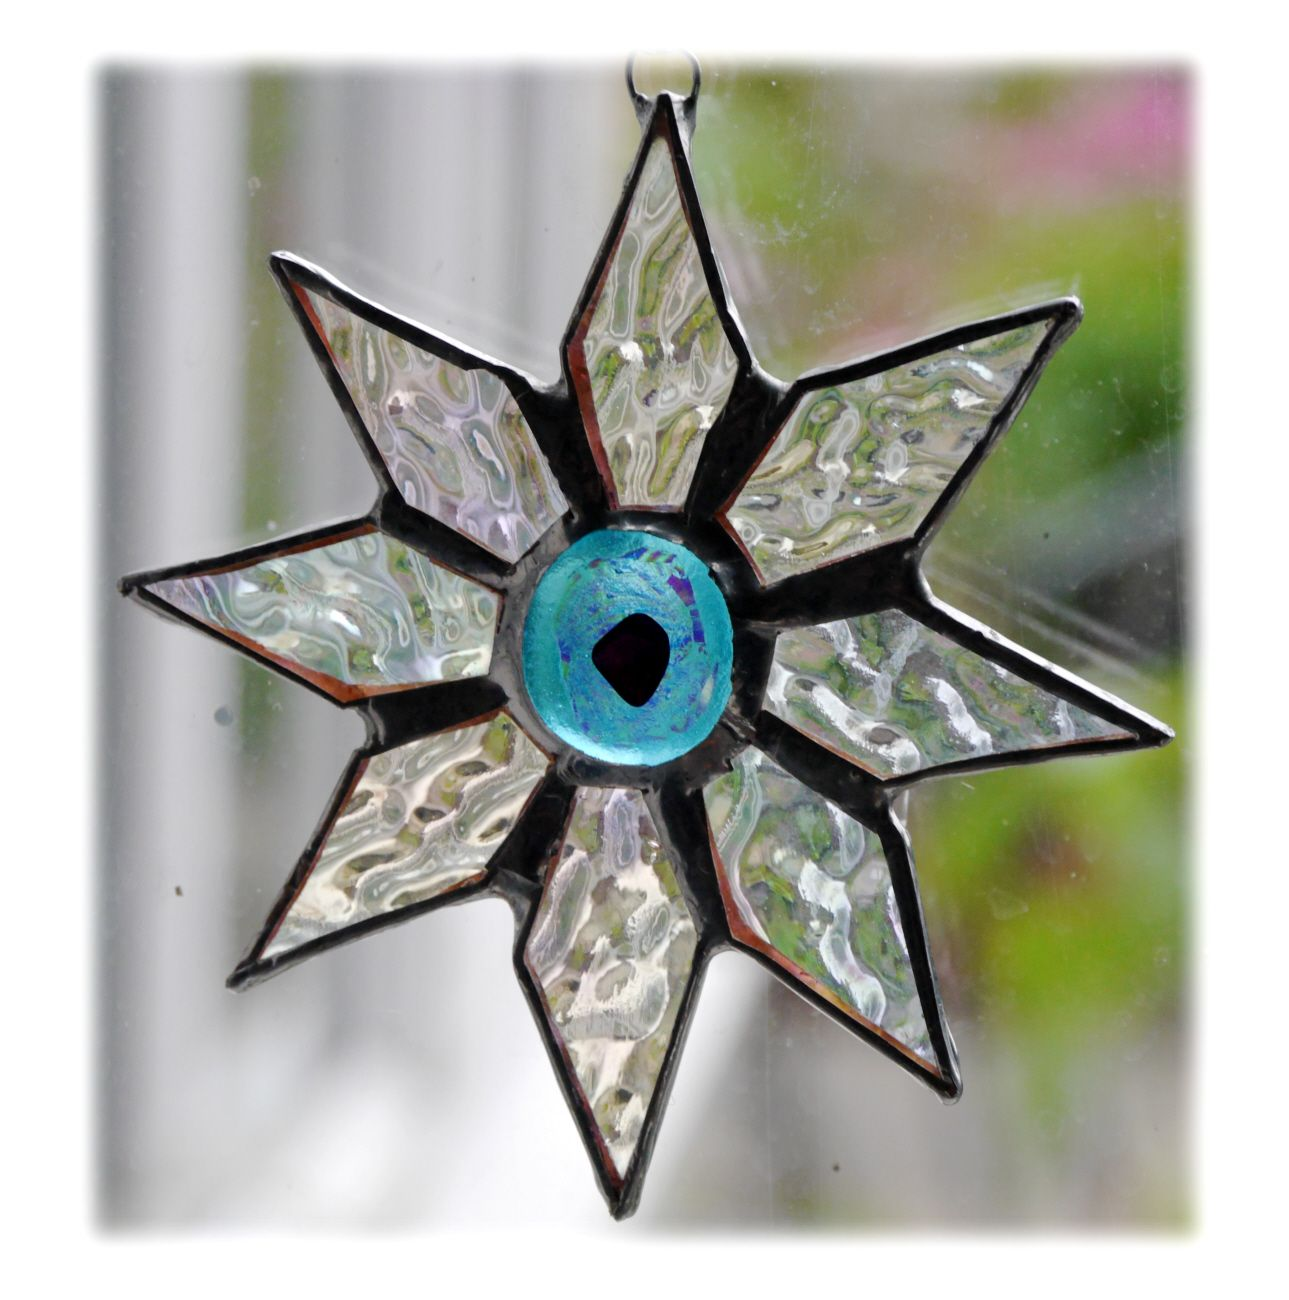 Shiny Star 9.5cm 003 Turquoise #1808 @MARKETS @181127 @9.00